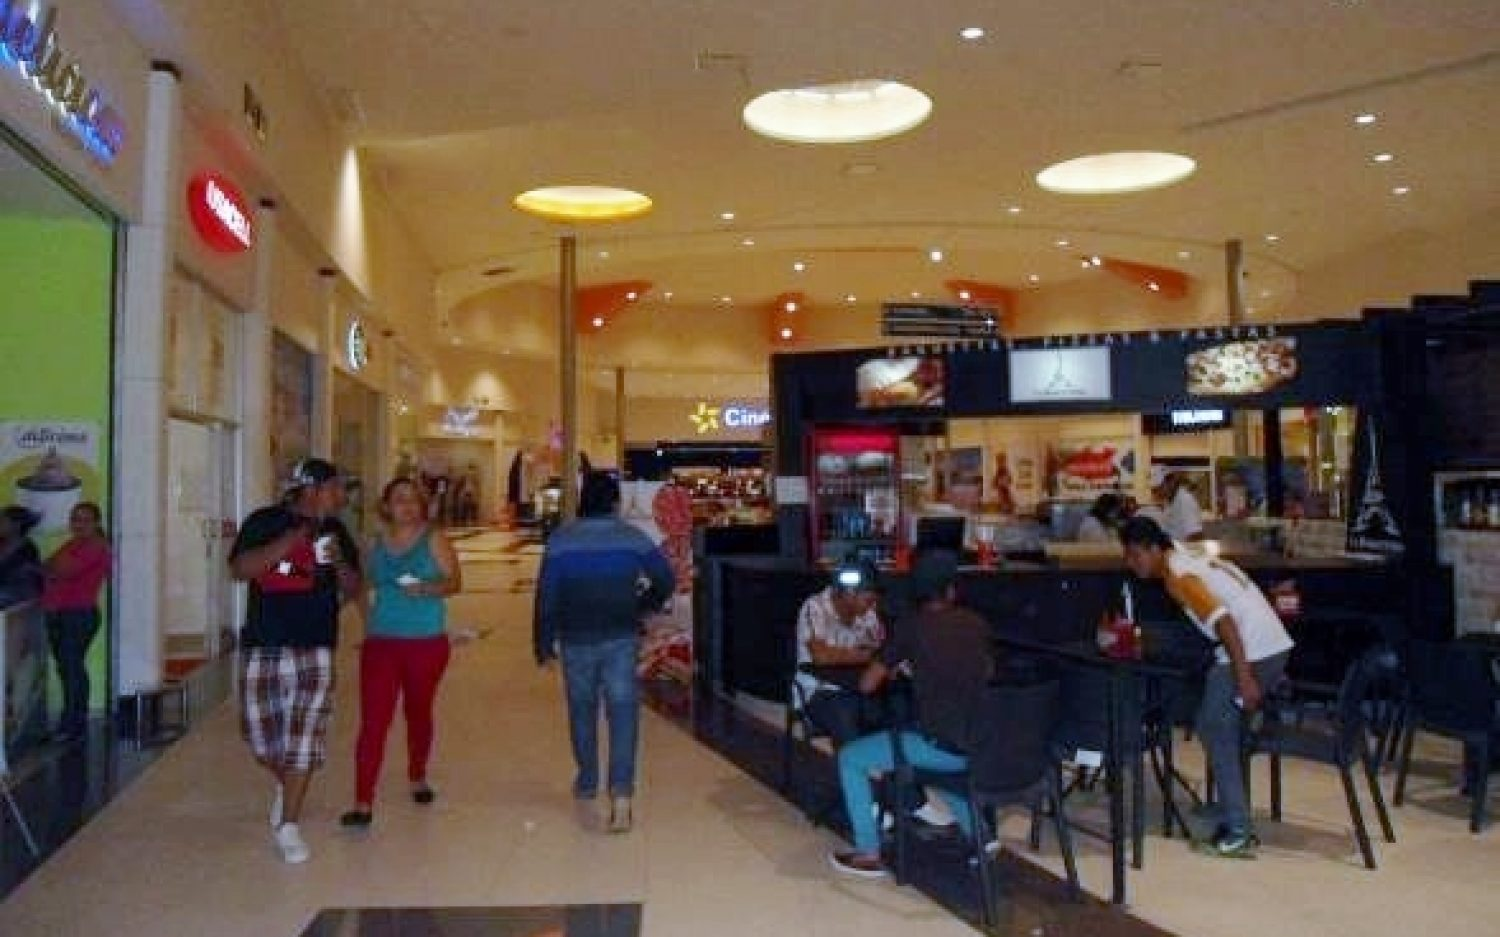 Co-Plaza Sendero Villahermosa (32)